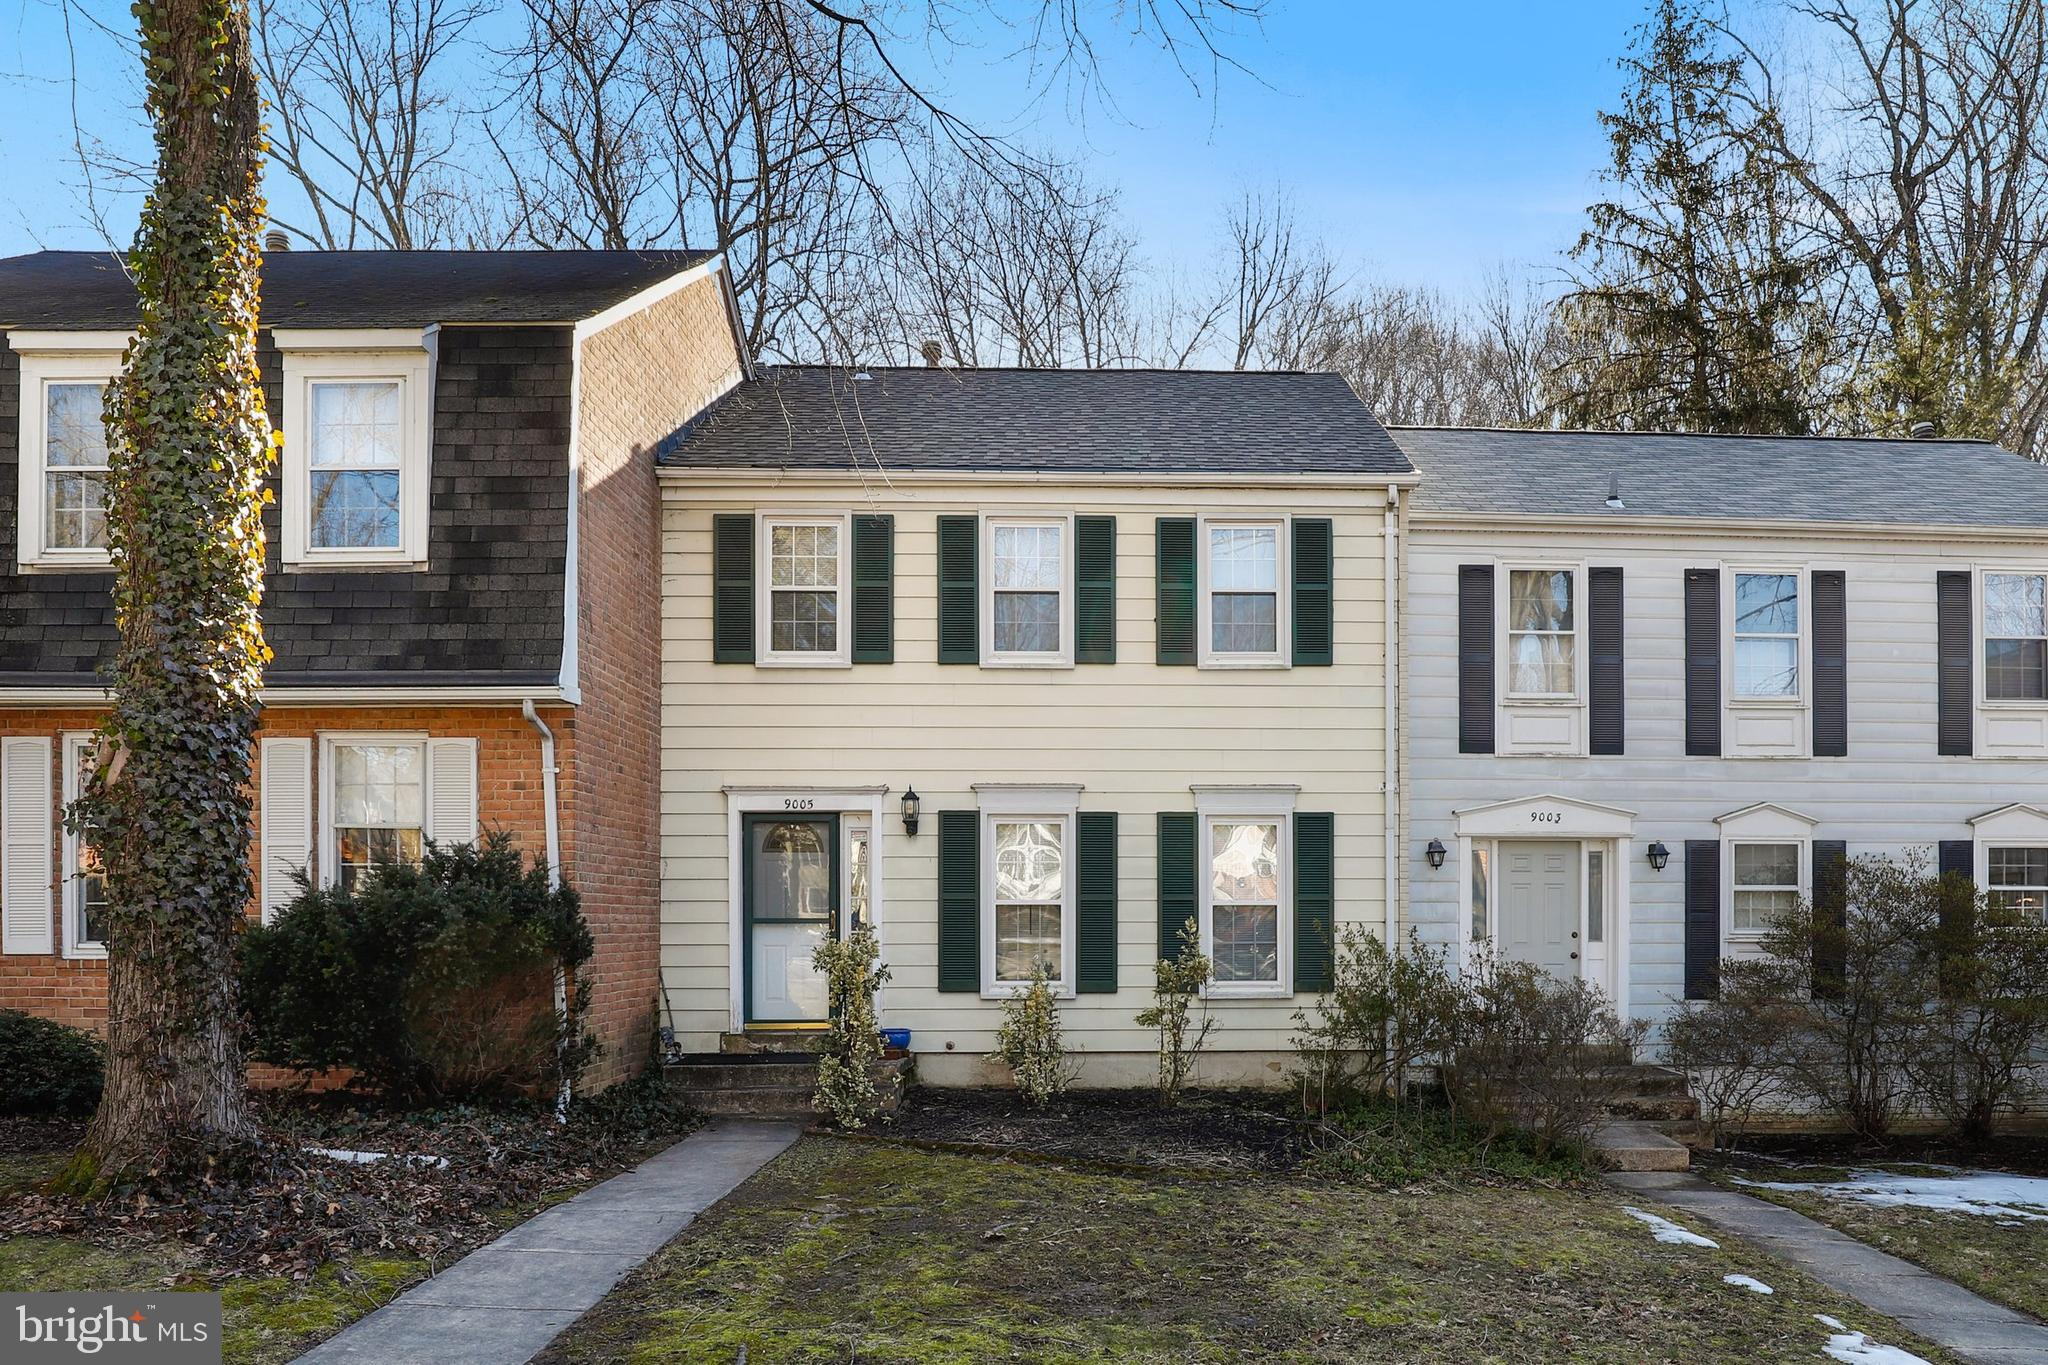 Gorgeous Three Level 3 Bedroom 3.5 Bath Townhome in sought after Village Of Long Reach that is move